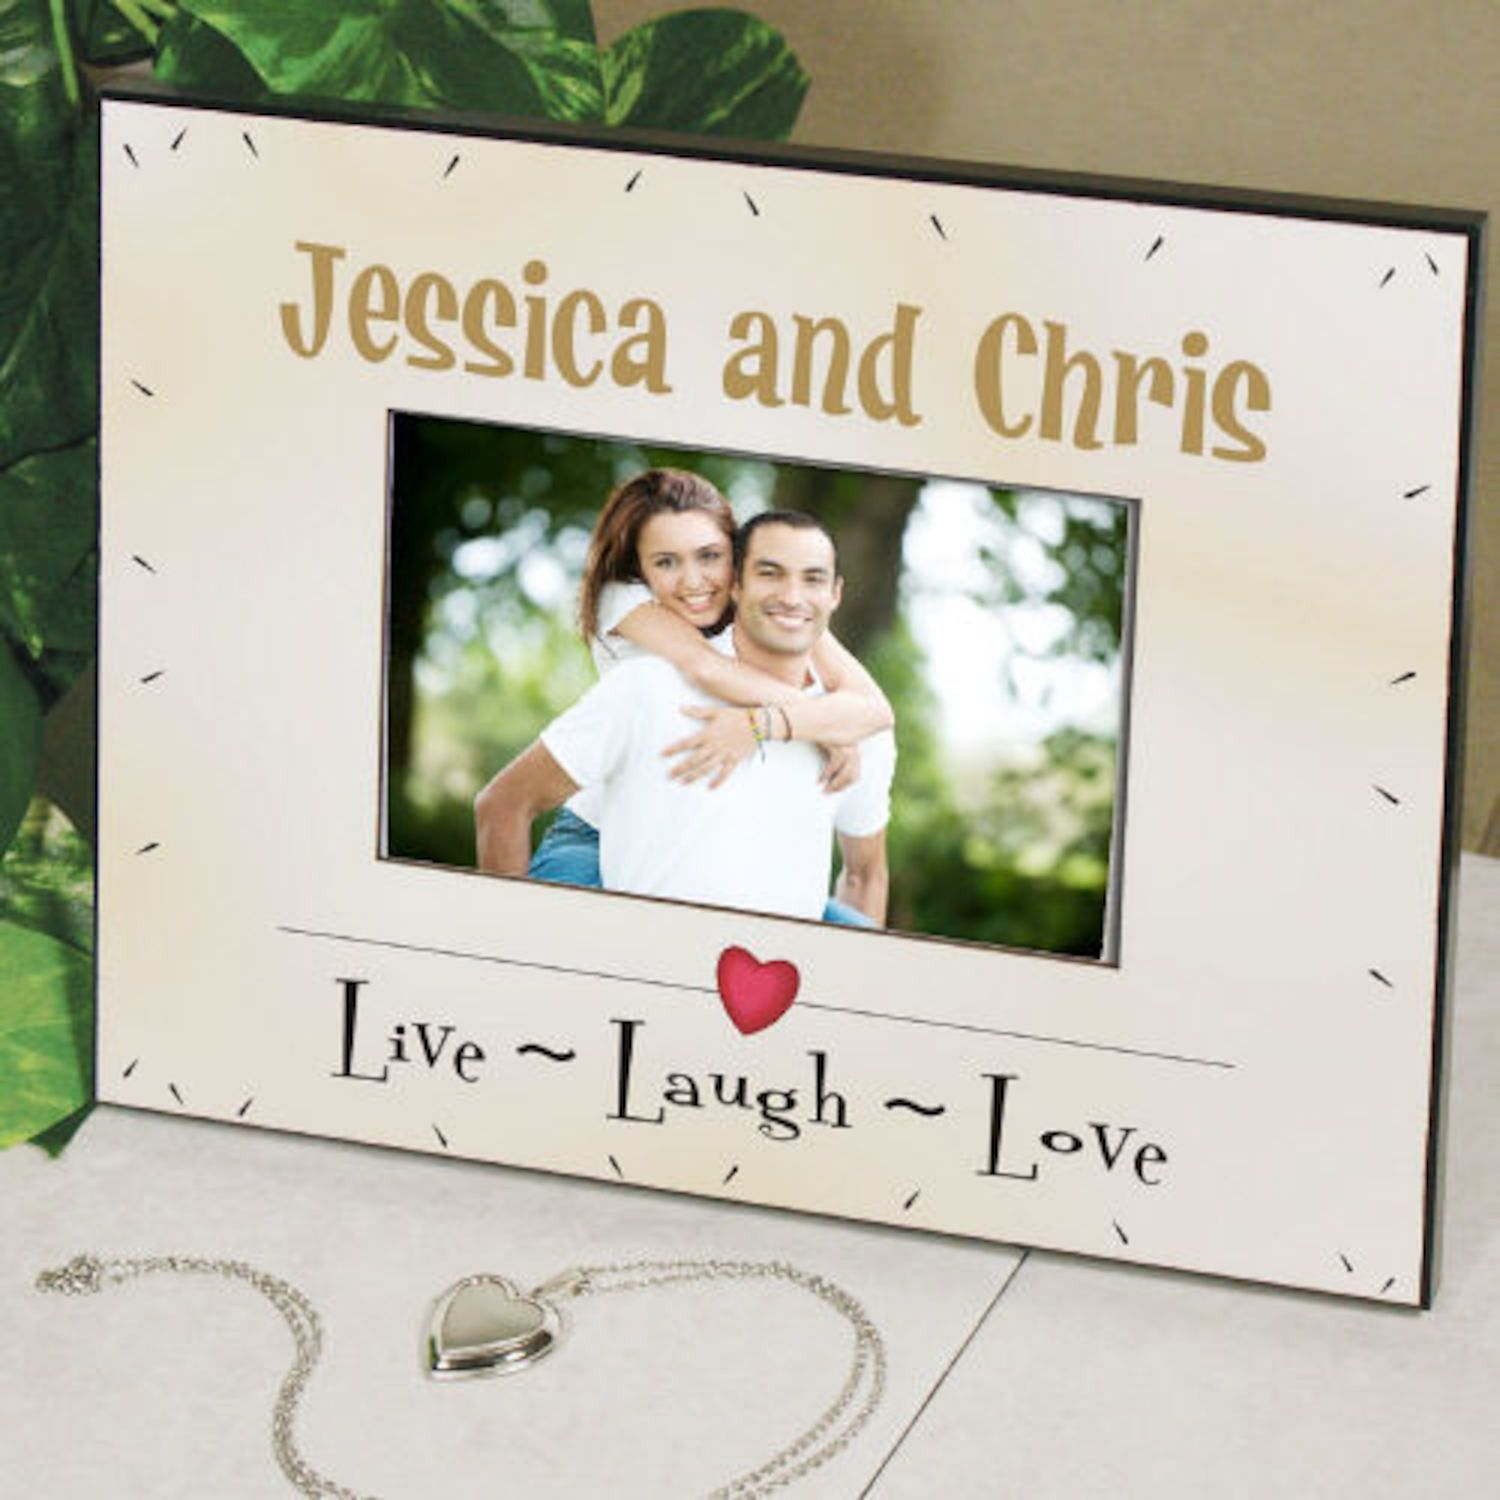 Personalized Live Laugh Love Printed Frame | Products | Pinterest ...